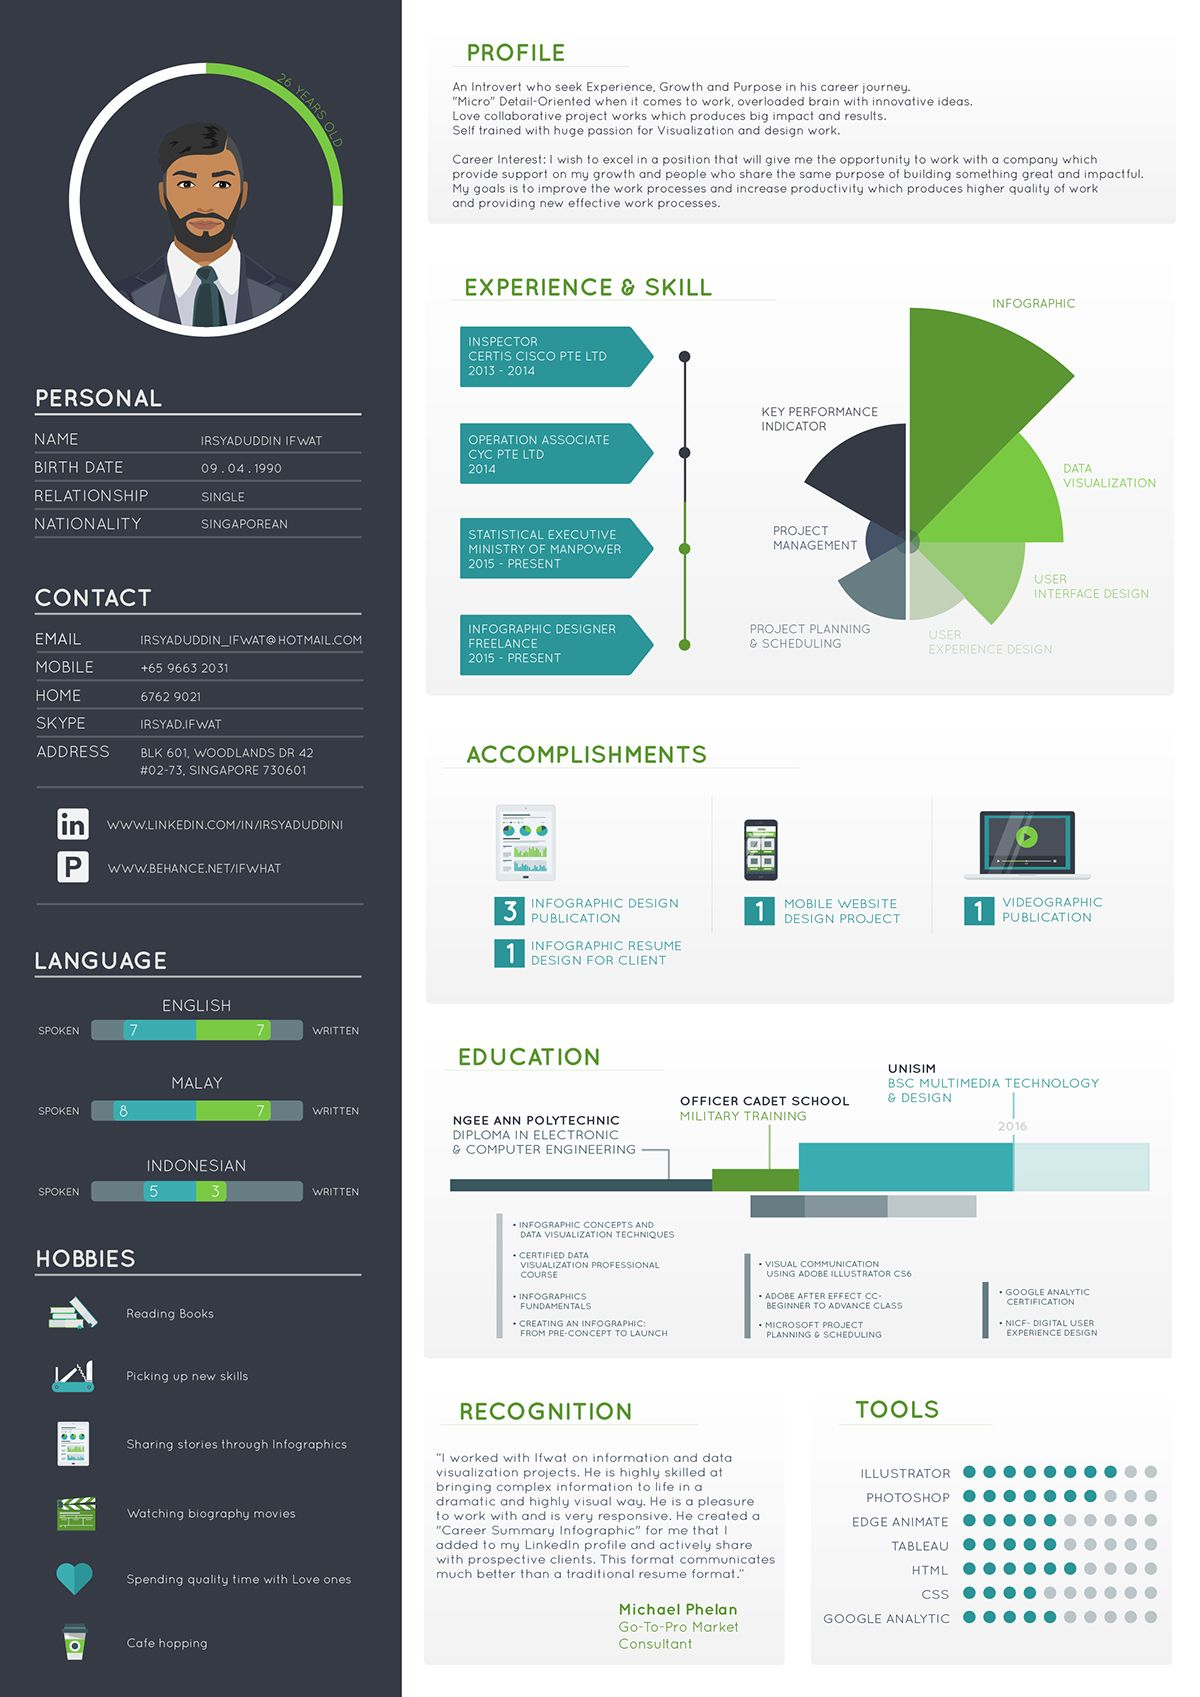 Irsyaduddin Ifwat Resume  On Behance  Infographic Visual